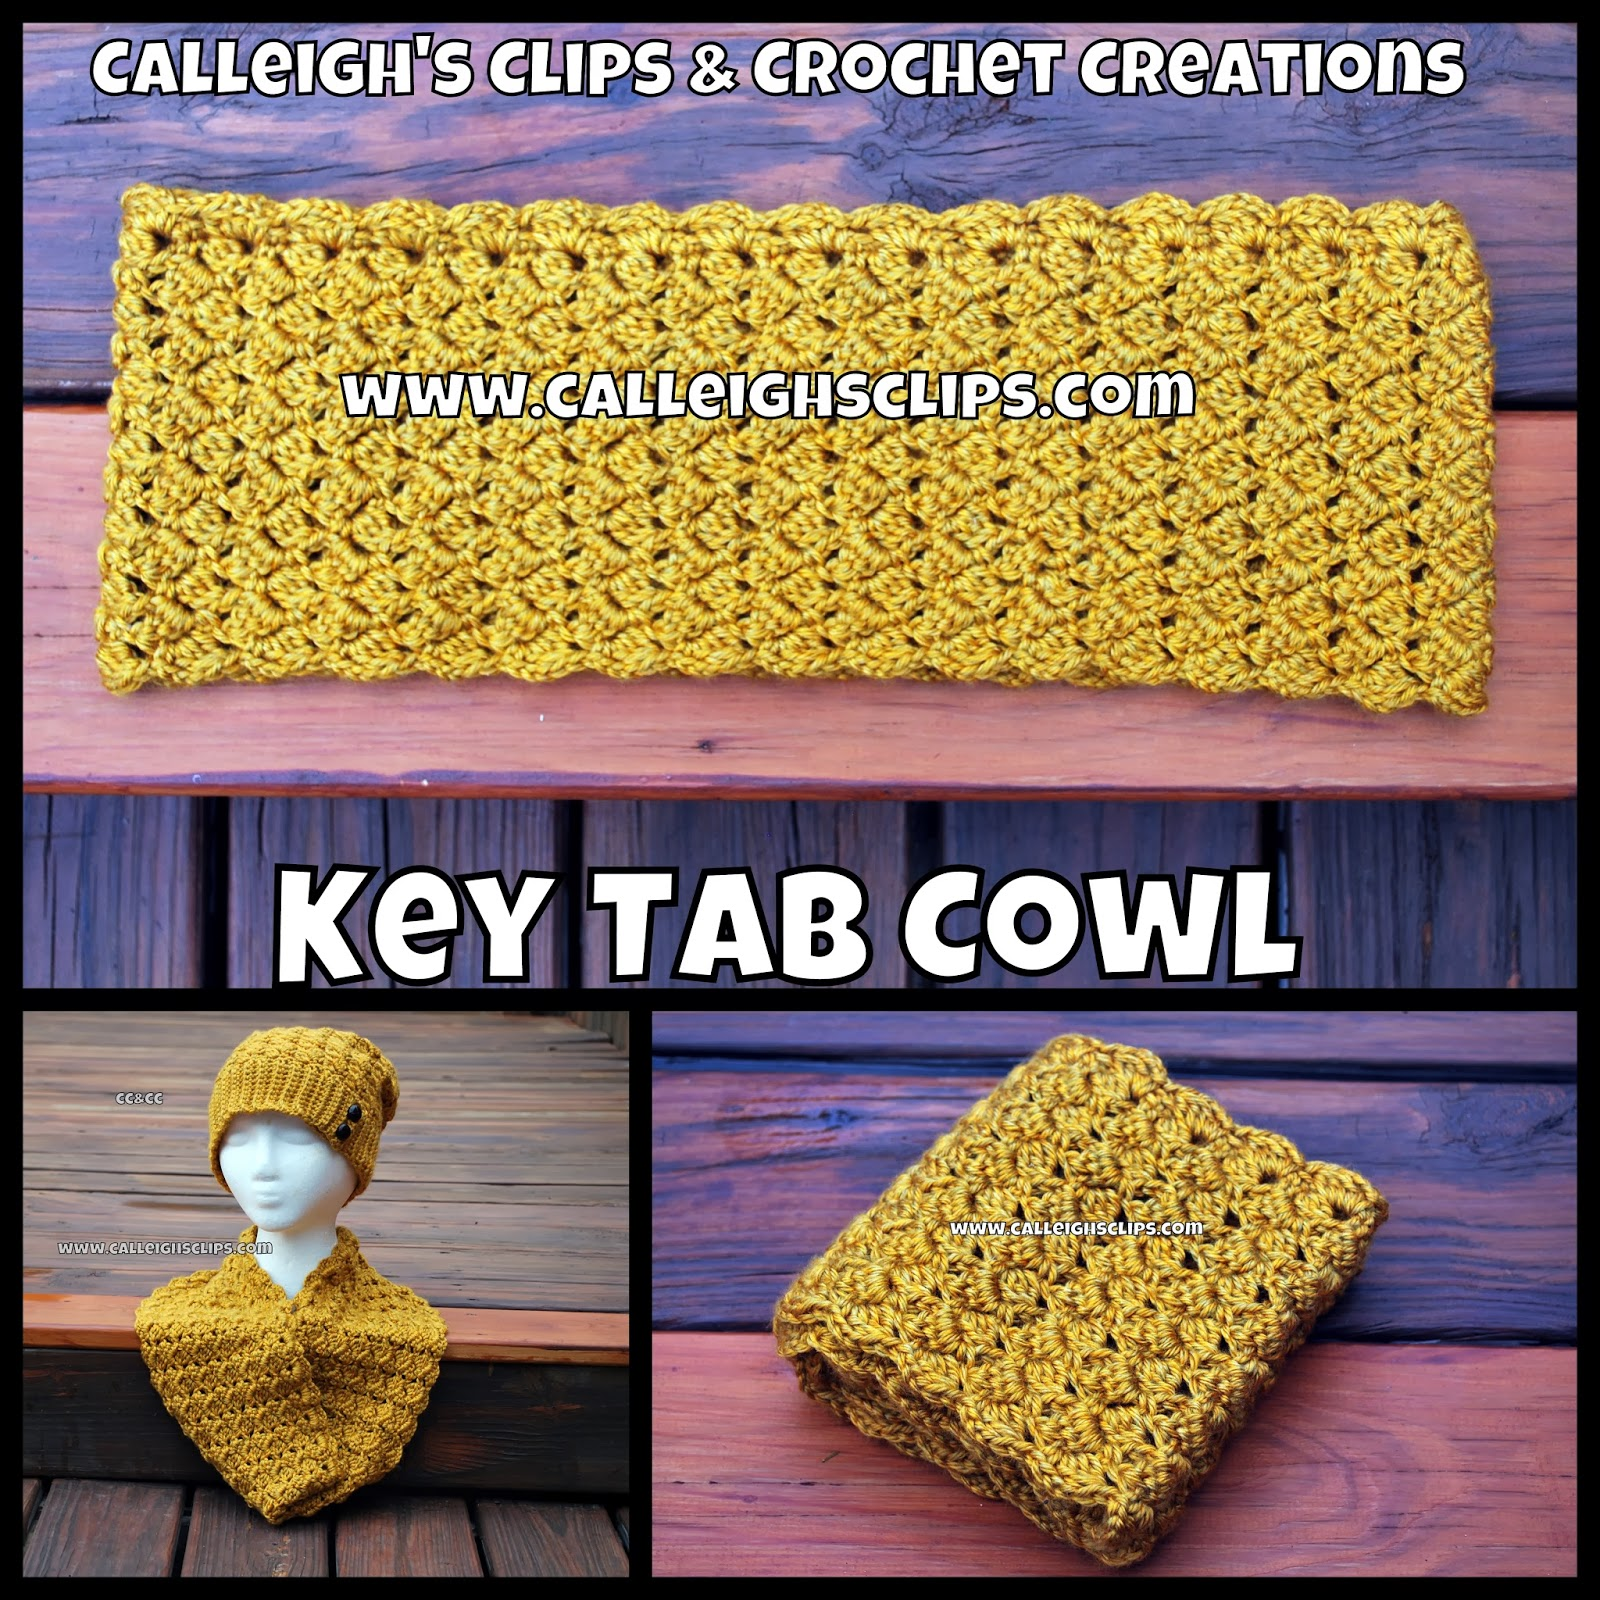 Crochet Patterns Key : ... Clips & Crochet Creations: Free Crochet Pattern - Key Tab Cowl